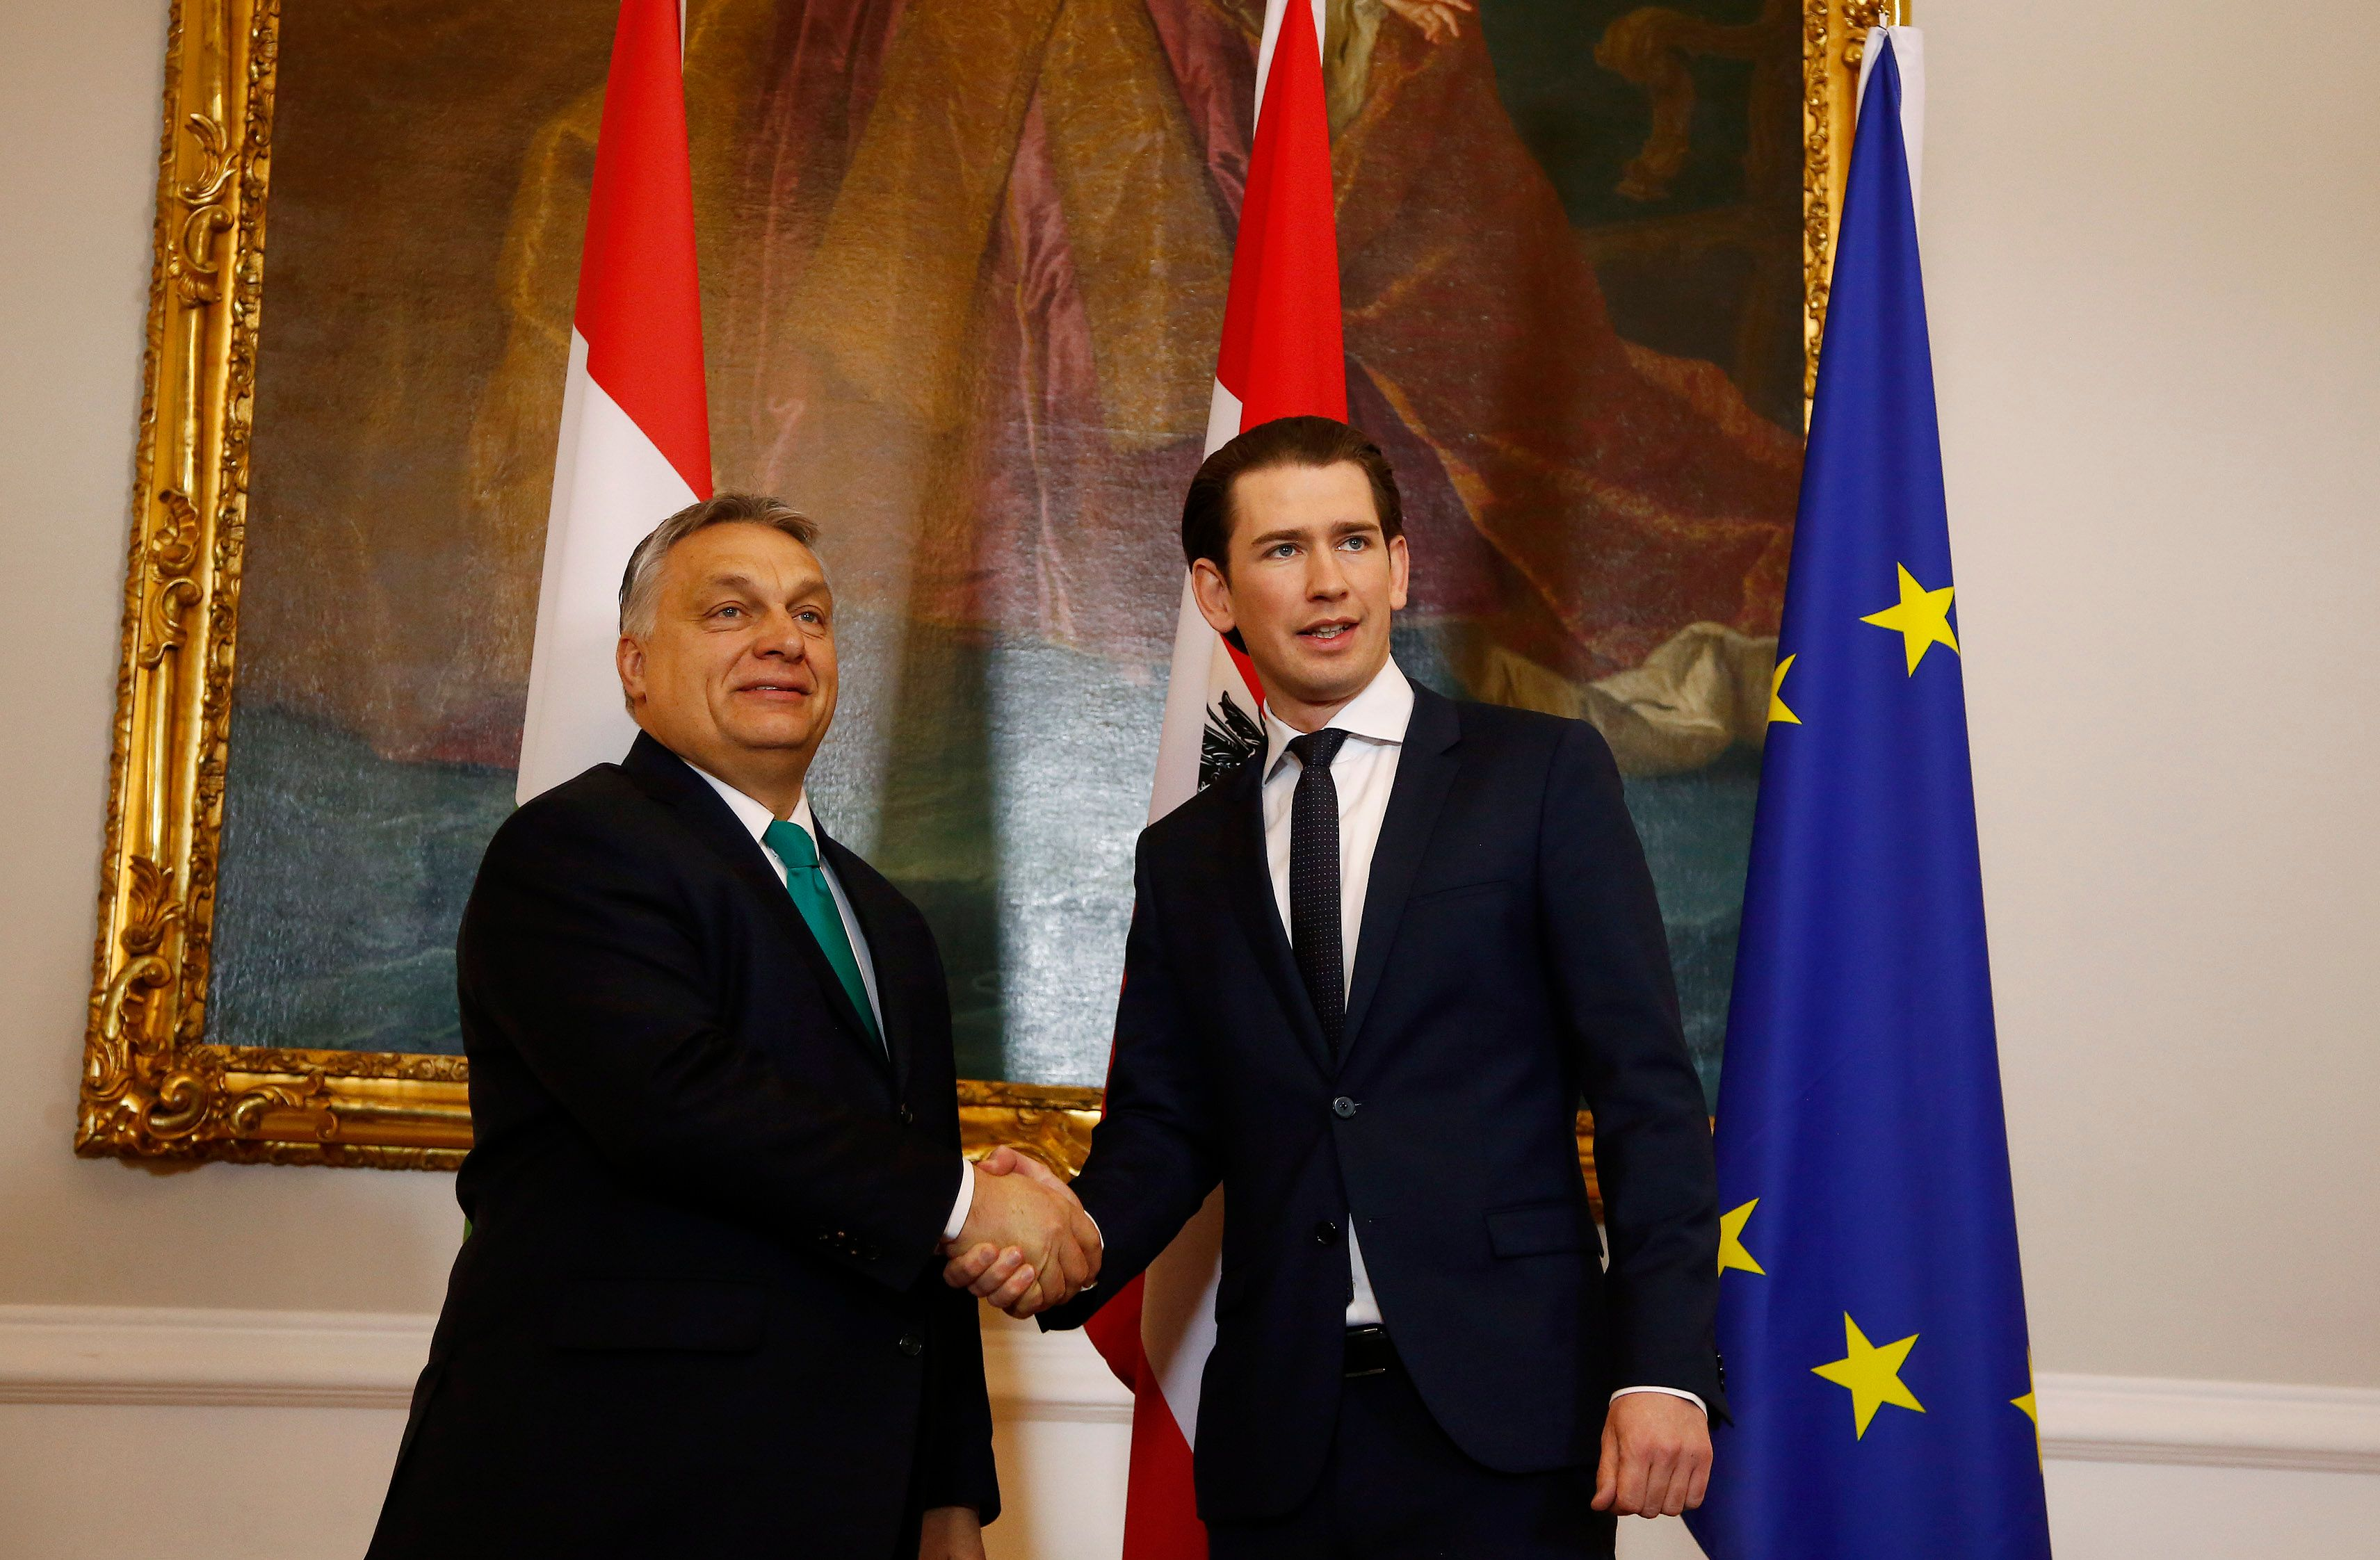 Austria's Kurz backs 4 Visegrad nations on migrant quotas